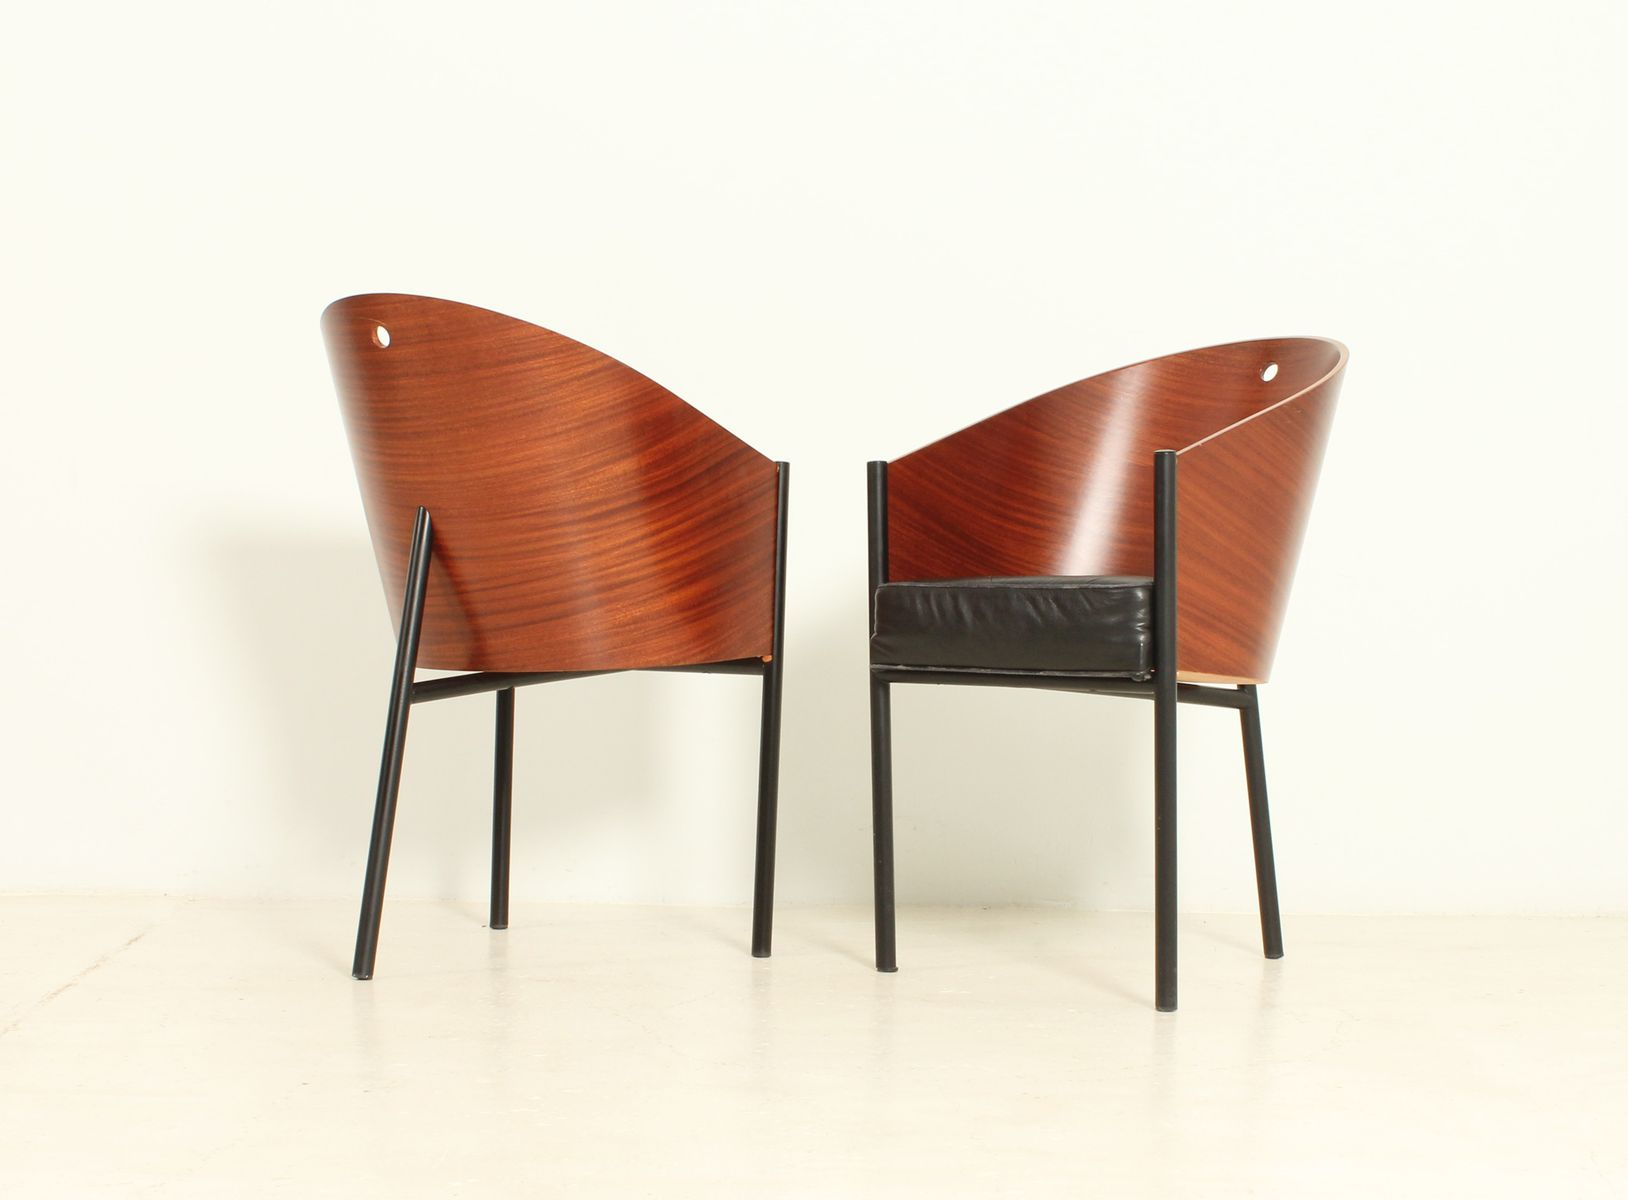 costes st hle von philippe starck f r driade 1980er 6er set bei pamono kaufen. Black Bedroom Furniture Sets. Home Design Ideas